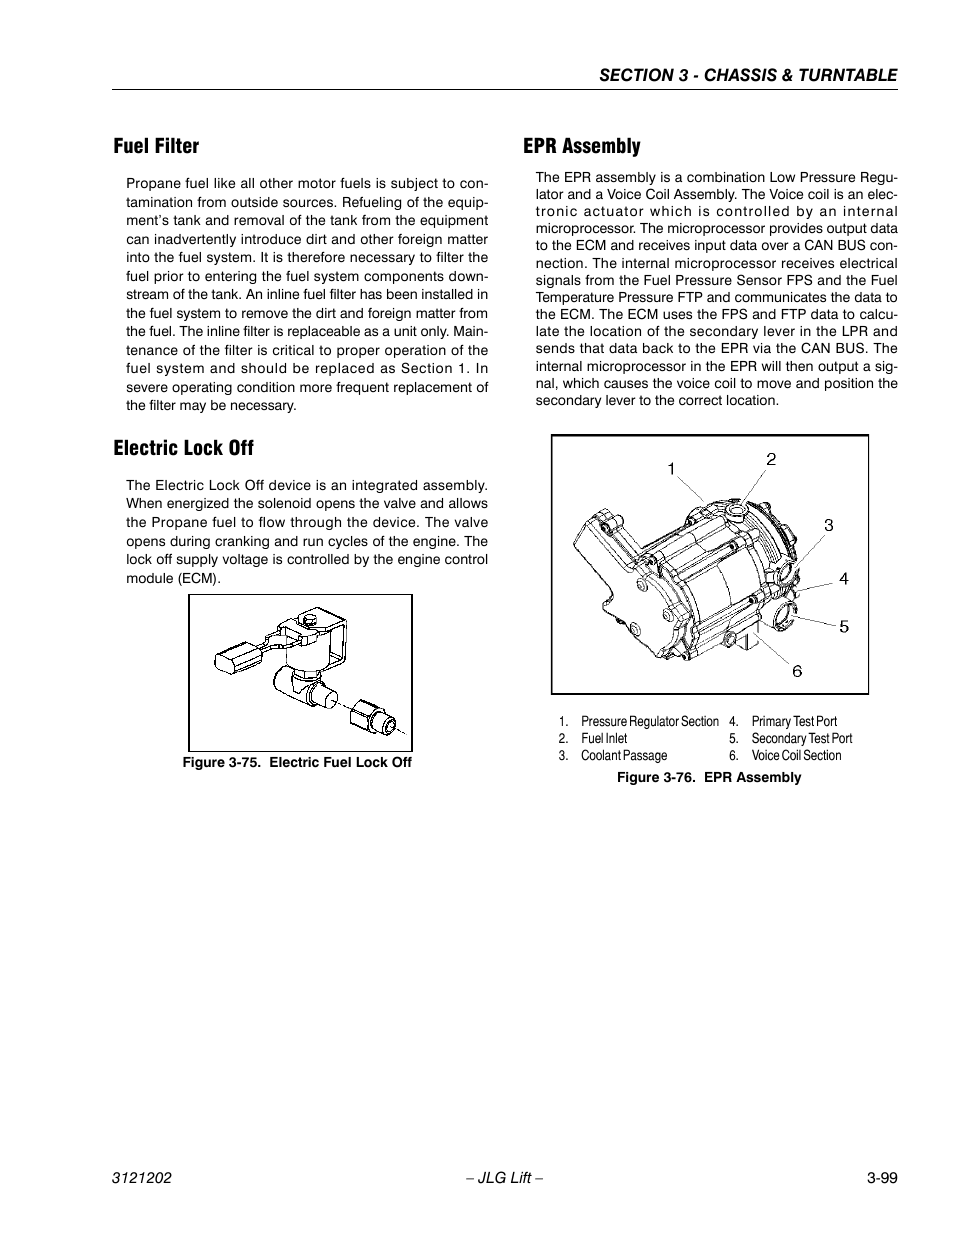 Fuel filter, Electric lock off, Epr assembly | JLG 660SJ Service Manual  User Manual | Page 149 / 334